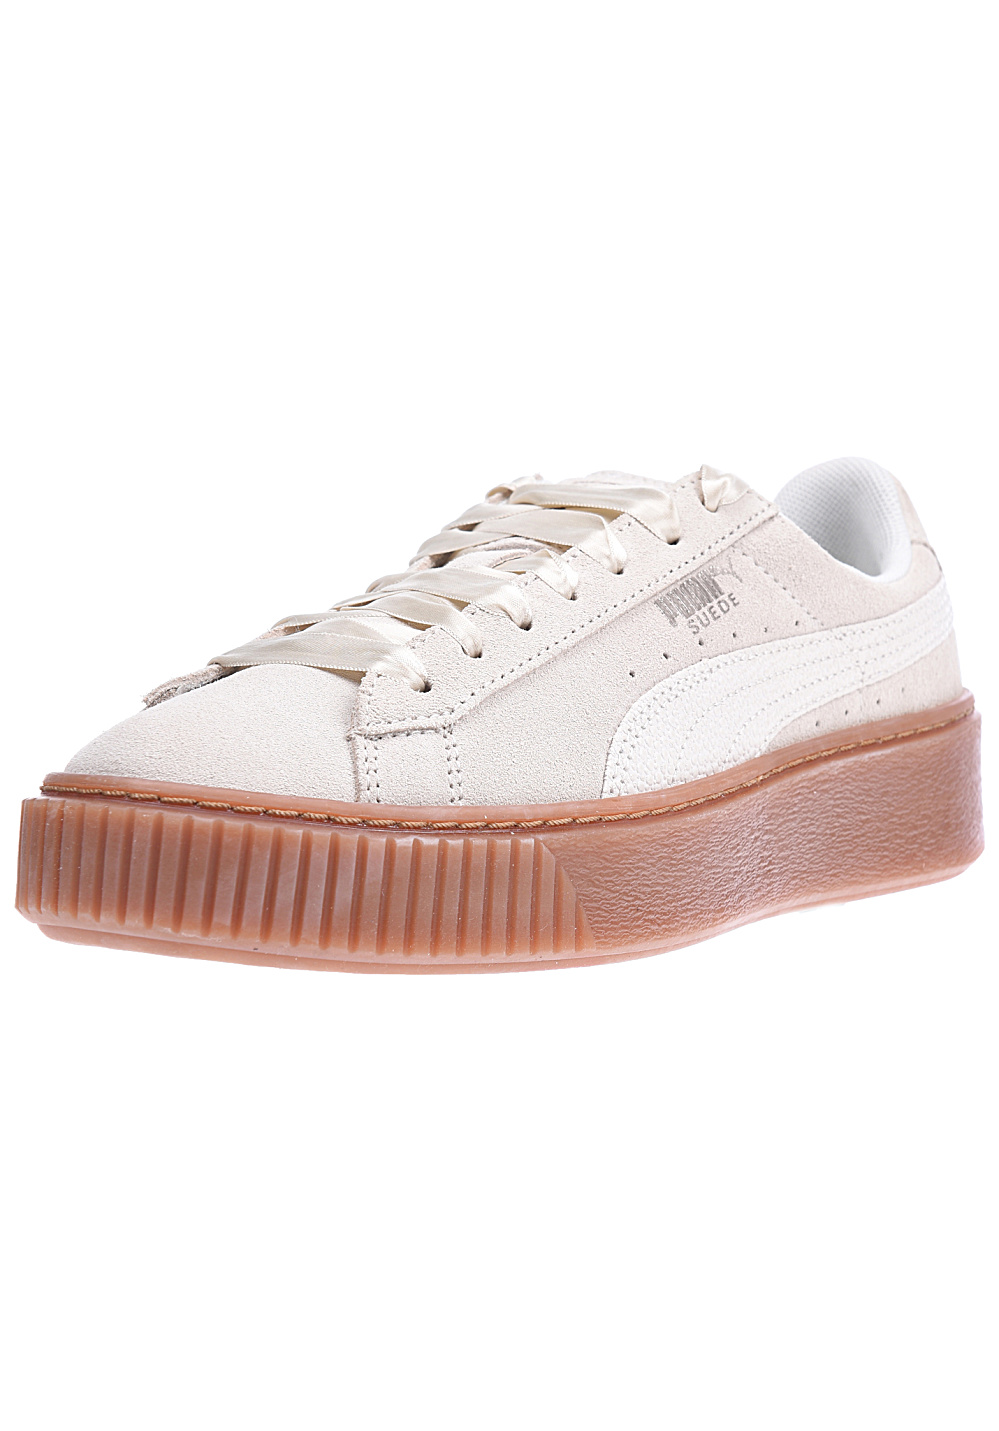 differently eb976 f6e7b Puma Suede Platform Bubble - Sneakers for Women - Beige